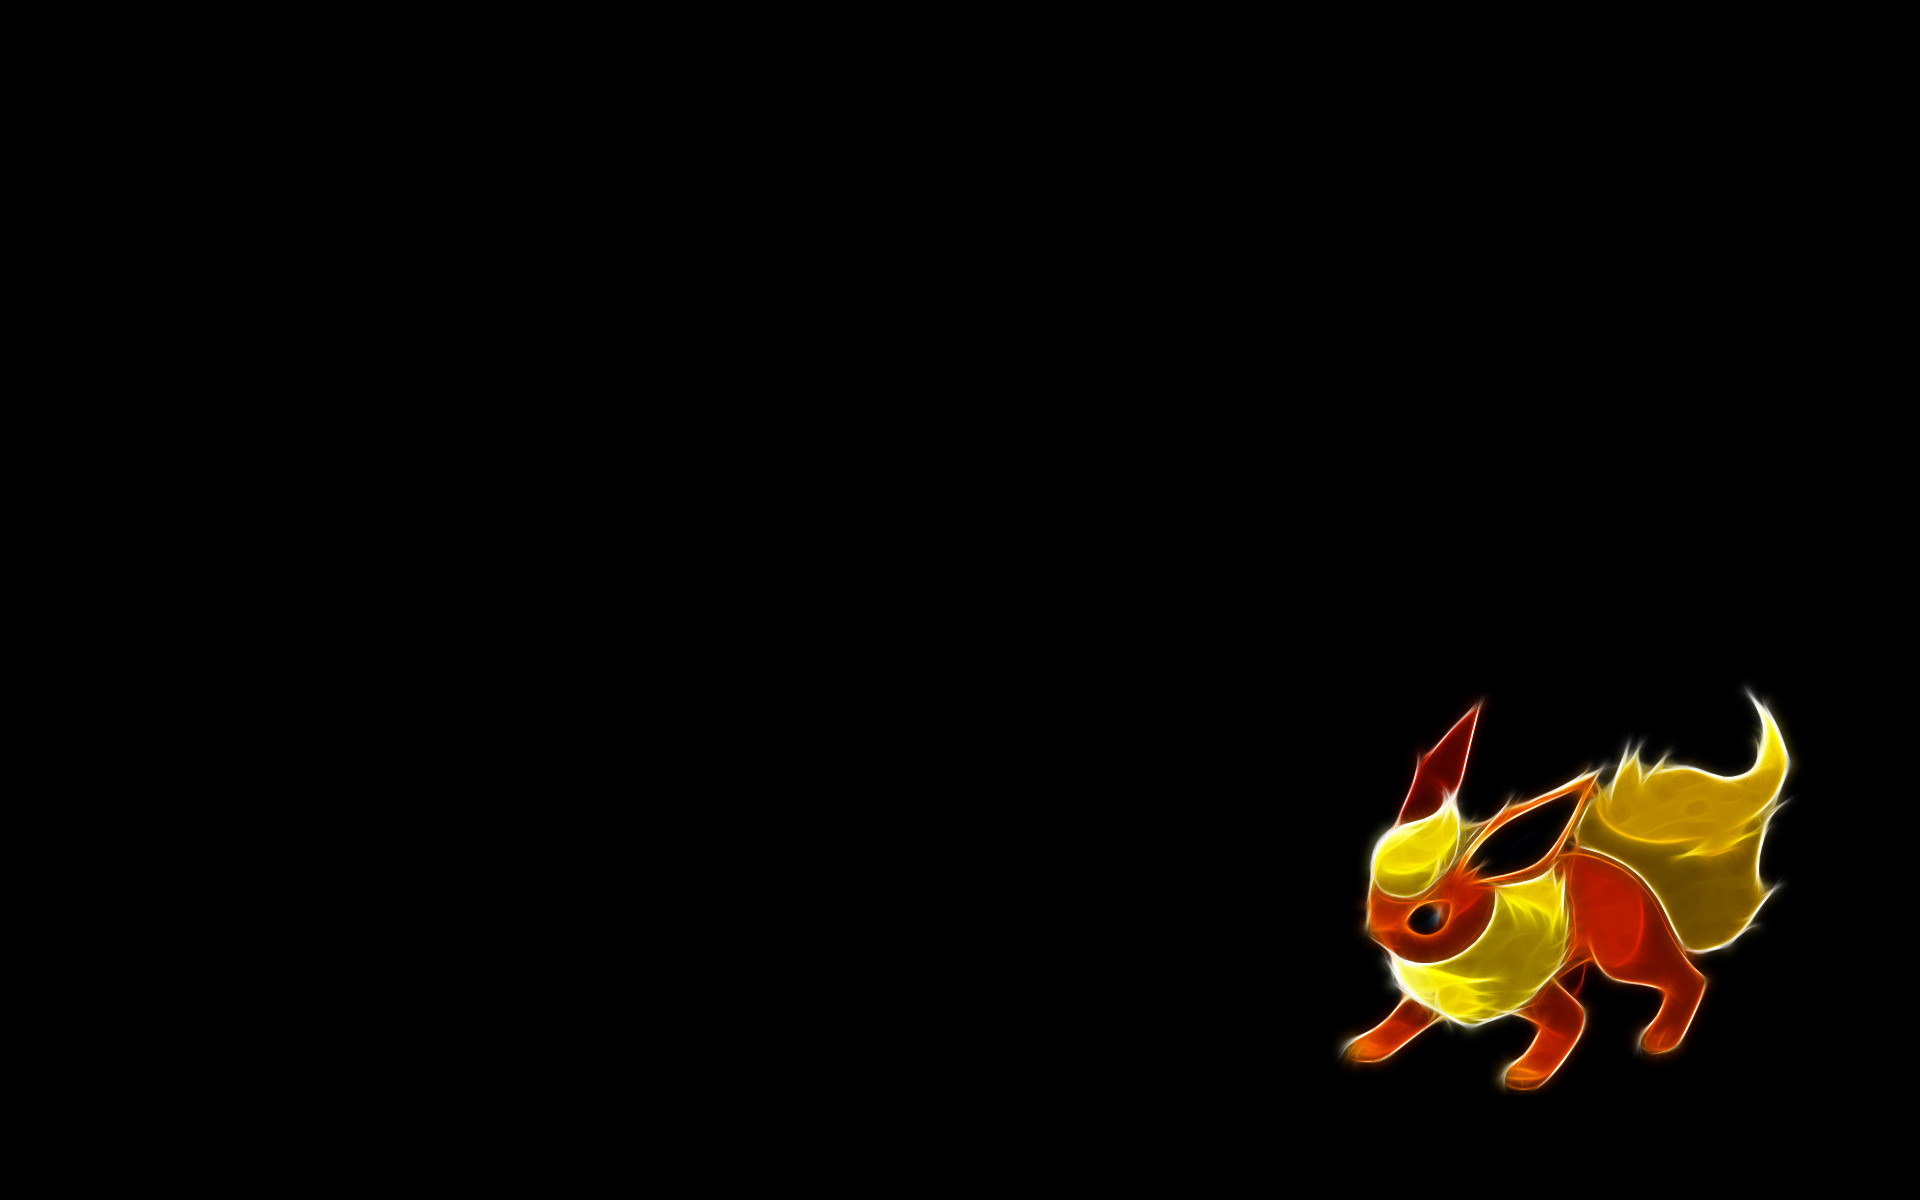 1920x1200 Digimon Black Background wallpaper - 743168